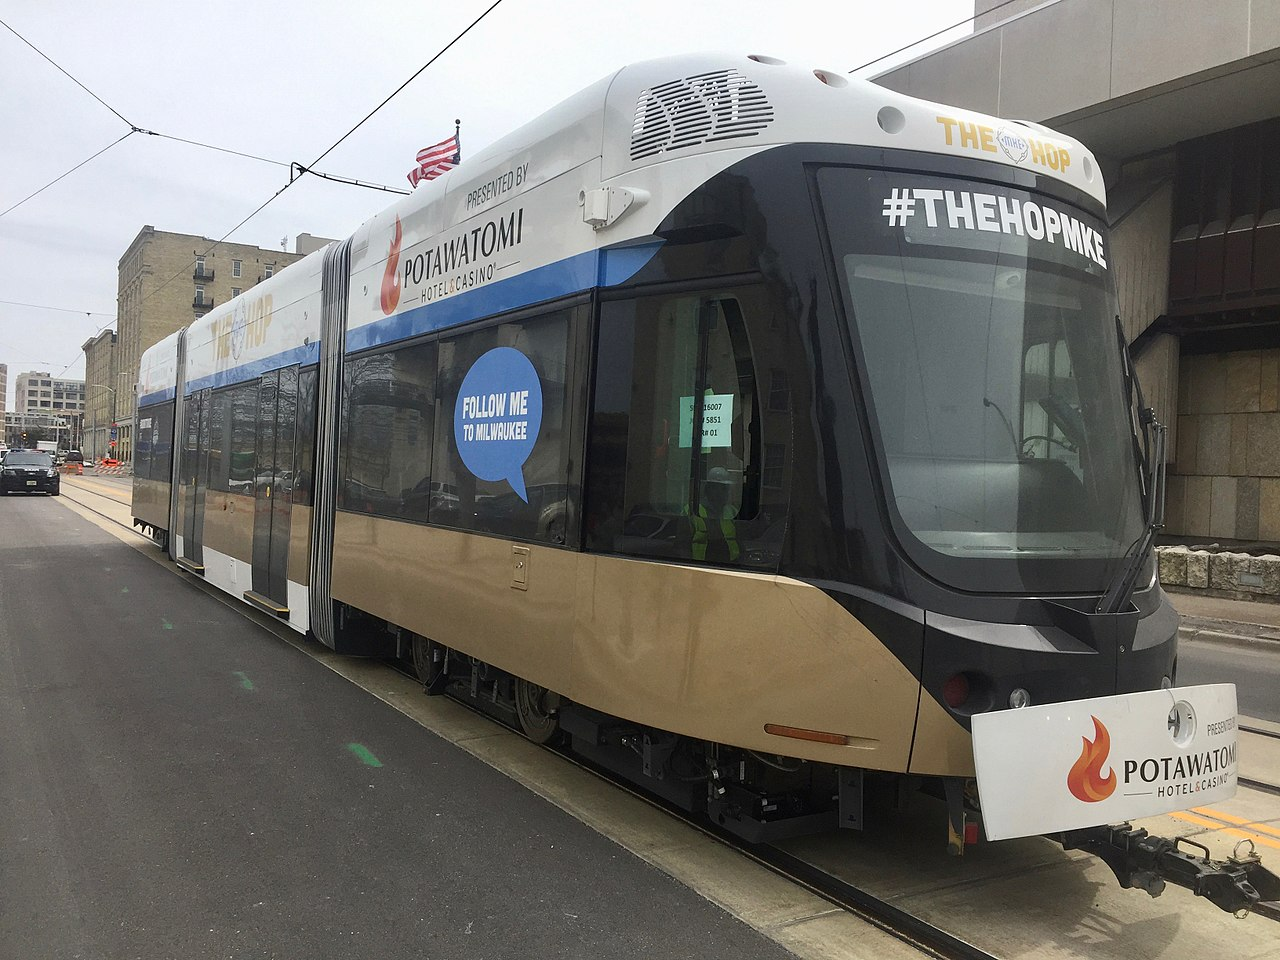 <table class=&quot;lightbox&quot;><tr><td colspan=2 class=&quot;lightbox-title&quot;>The HOP MKE</td></tr><tr><td colspan=2 class=&quot;lightbox-caption&quot;>A modern streetcar through downtown, called The HOP MKE, hit the tracks in Spring 2018 and is set to be open to the public in November.</td></tr><tr><td colspan=2 class=&quot;lightbox-spacer&quot;></td></tr><tr class=&quot;lightbox-detail&quot;><td class=&quot;cell-title&quot;>Source: </td><td class=&quot;cell-value&quot;>From the Wikimedia Commons. Photograph by Nicholas La Joie. CC BY-SA 4.0.<br /><a href=&quot;https://commons.wikimedia.org/wiki/File:The_HOP_MKE_Streetcar.jpg&quot; target=&quot;_blank&quot;>Wikimedia Commons</a></td></tr><tr class=&quot;filler-row&quot;><td colspan=2>&nbsp;</td></tr></table>